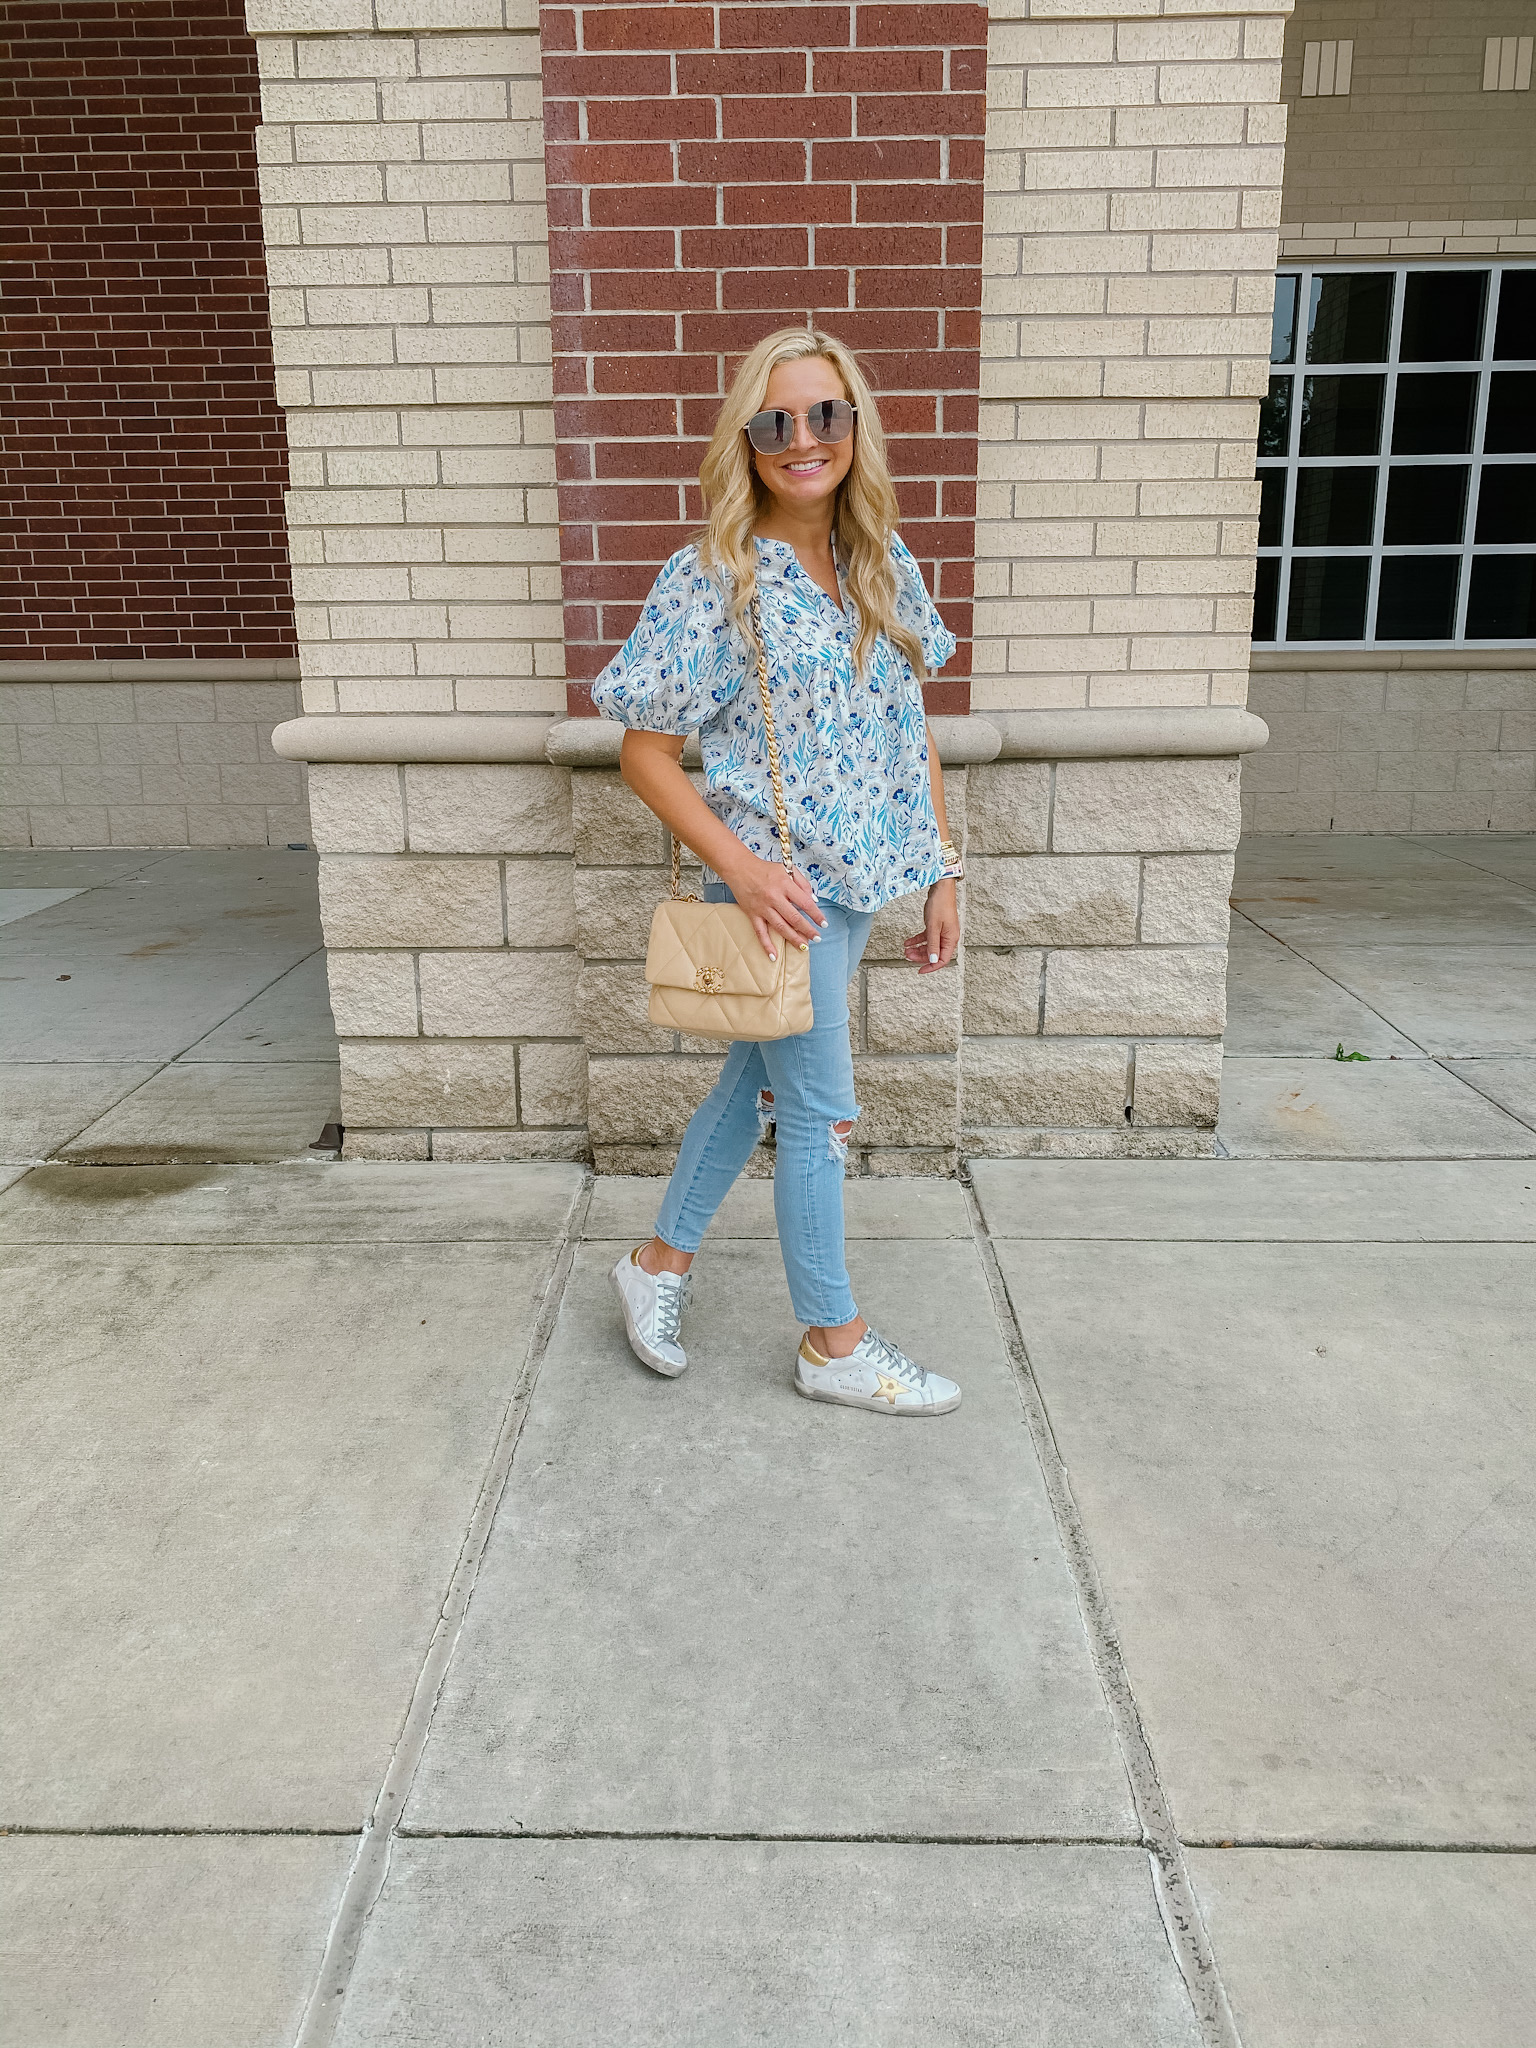 Best Sellers by popular Houston fashion blog, The House of Fancy: image of a woman standing next to a brick building and wearing a blue floral print puff sleeve top, light wash distress denim and golden goose sneakers.